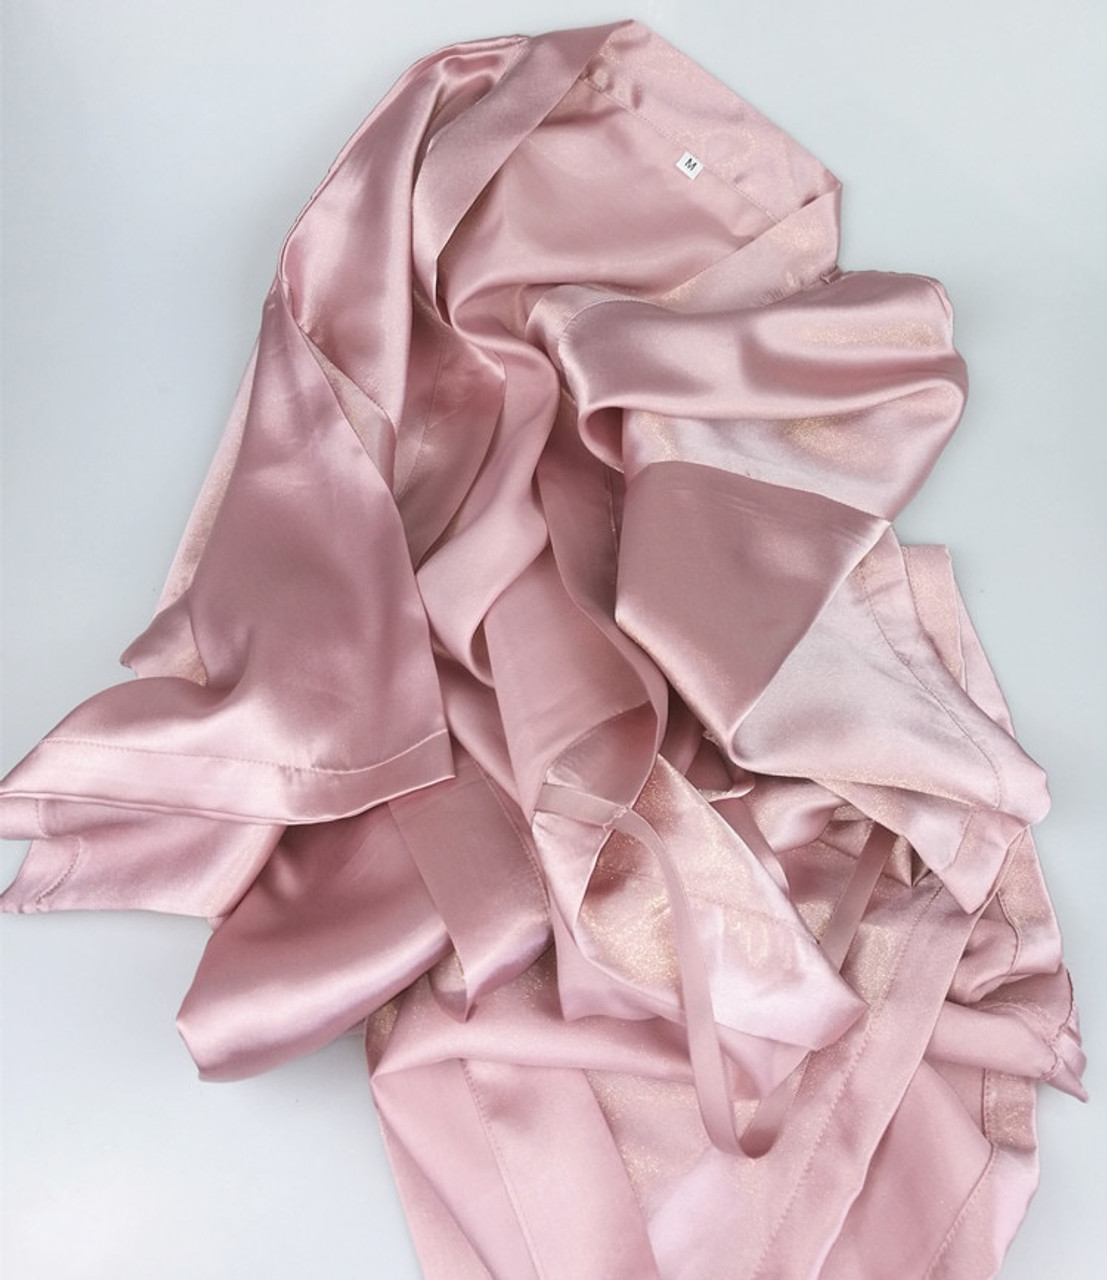 C Amp Fung Dark Pink Robe Silver Letter Kimono Personalised Satin Pajamas Wedding Robe Bridesmaid Sister Mother Of The Bride Robes Onshopdeals Com